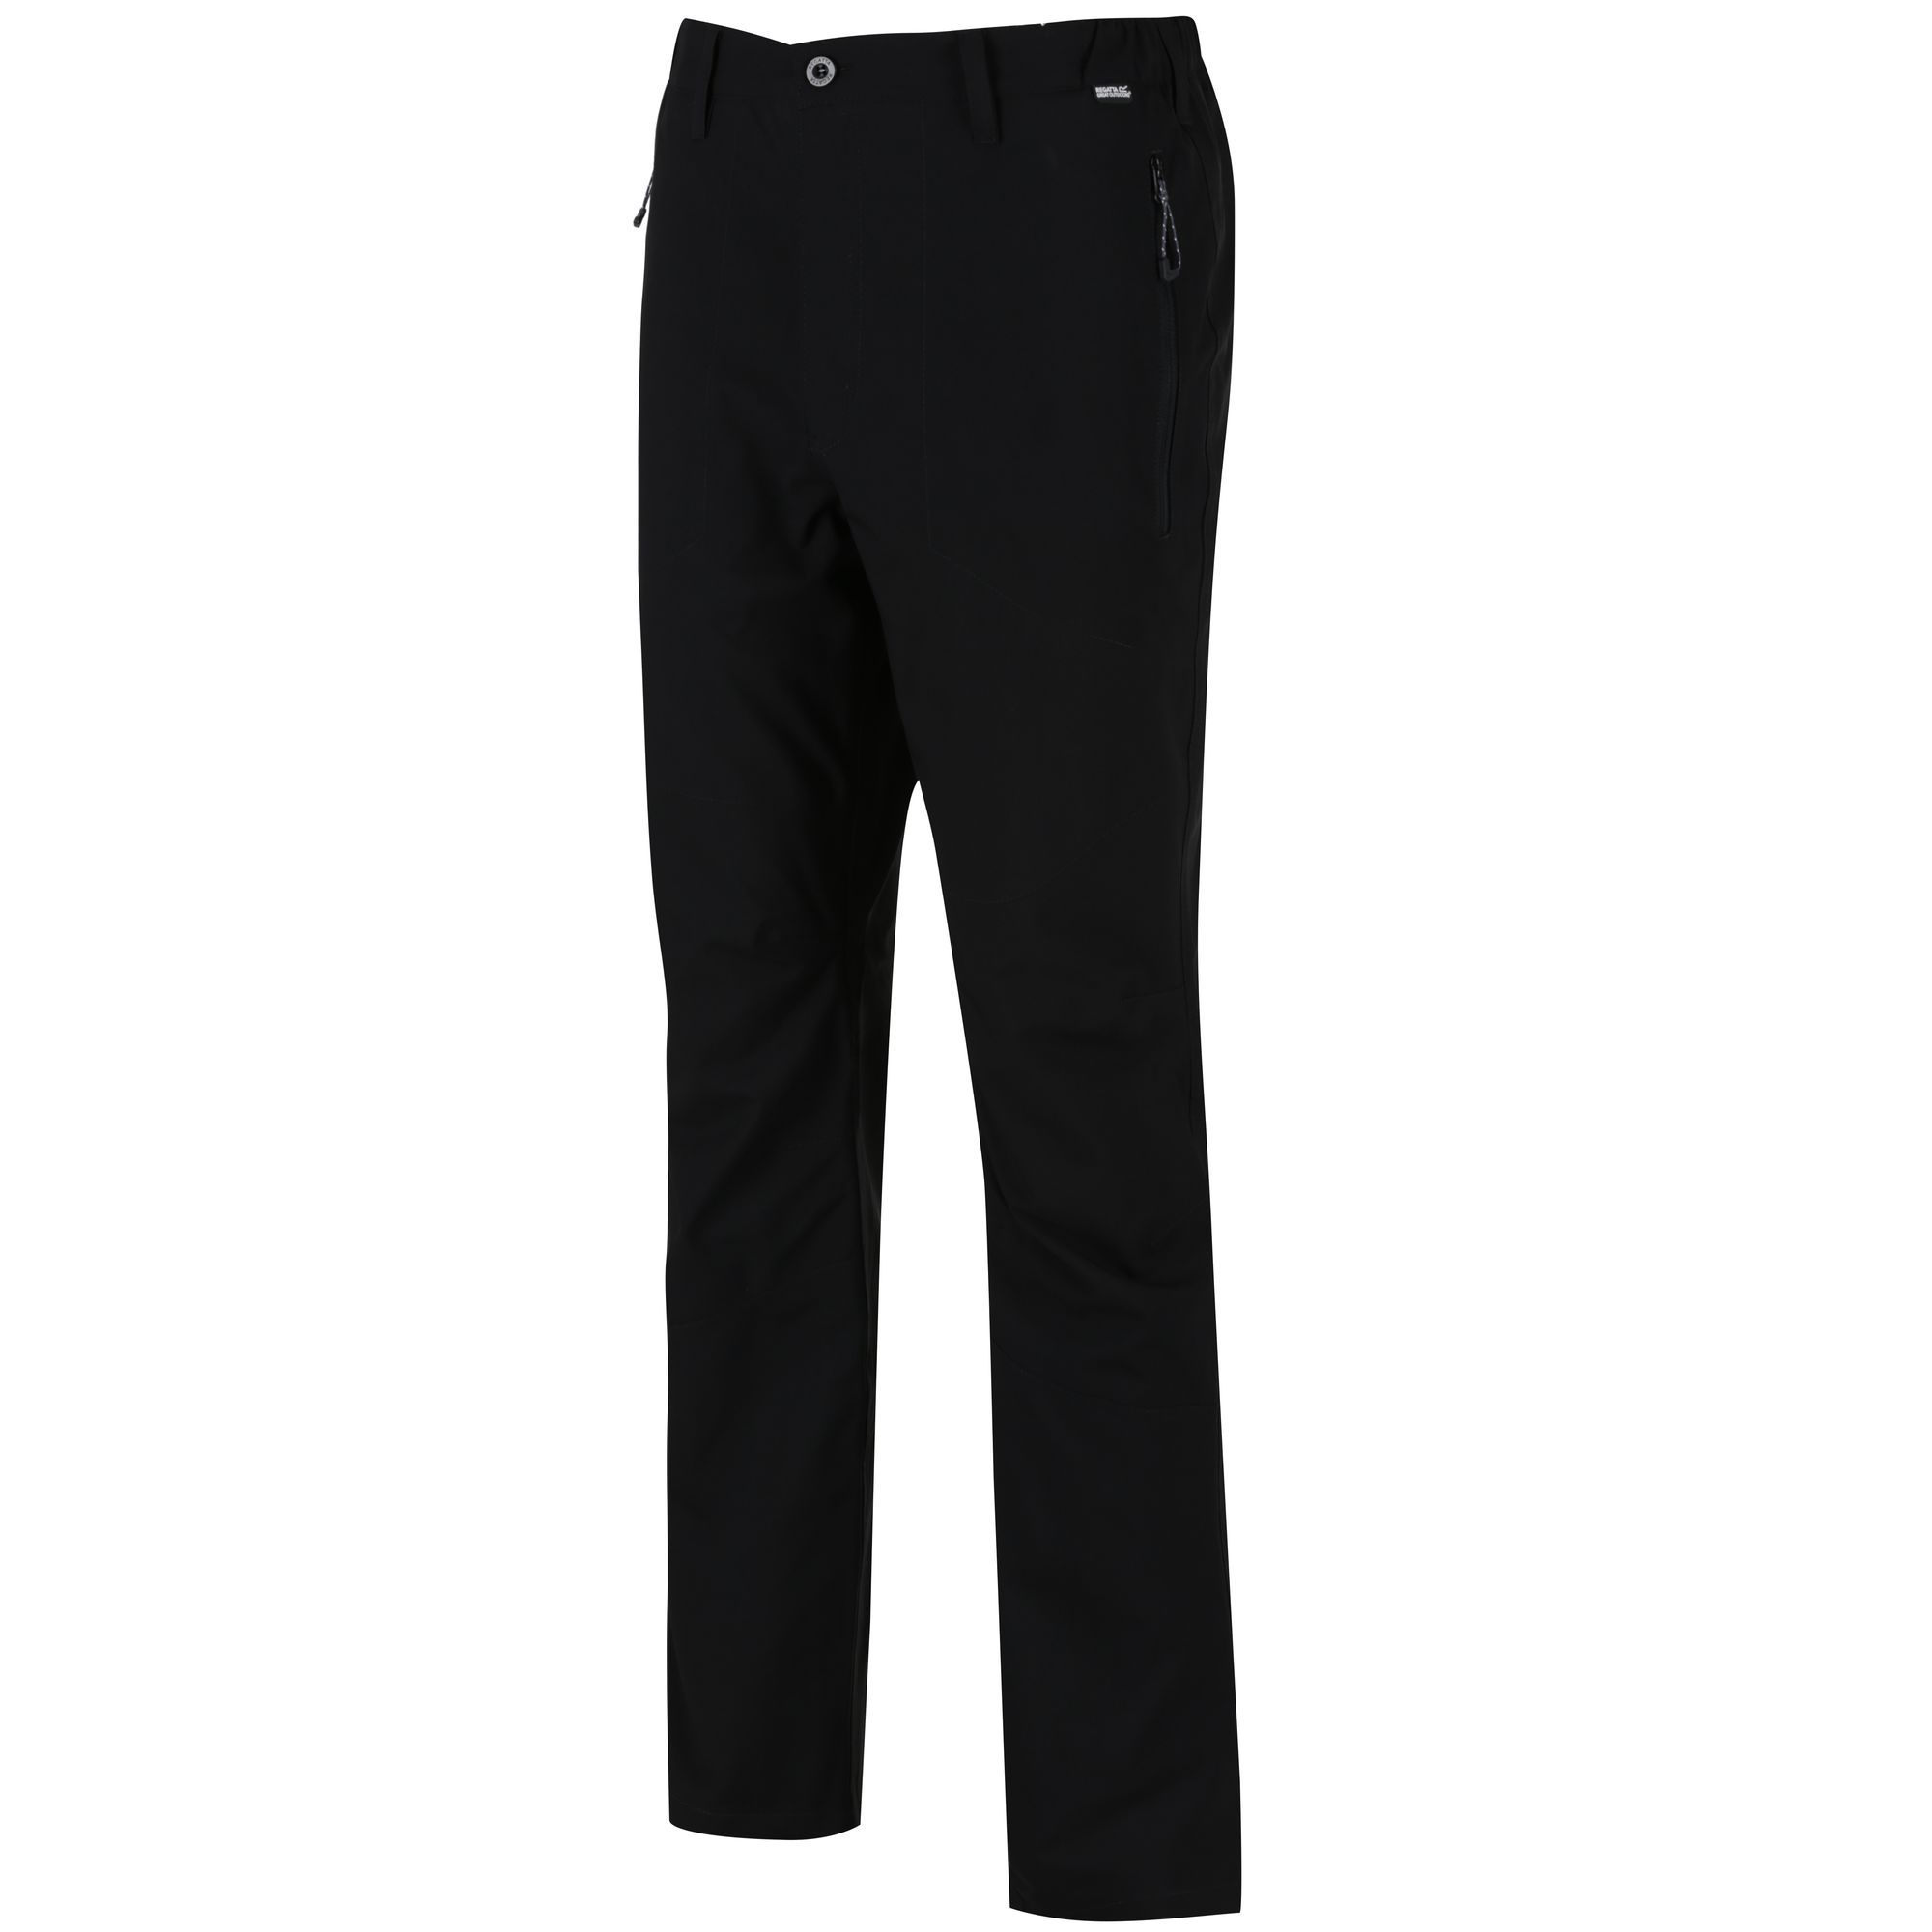 Men's Walking Trousers